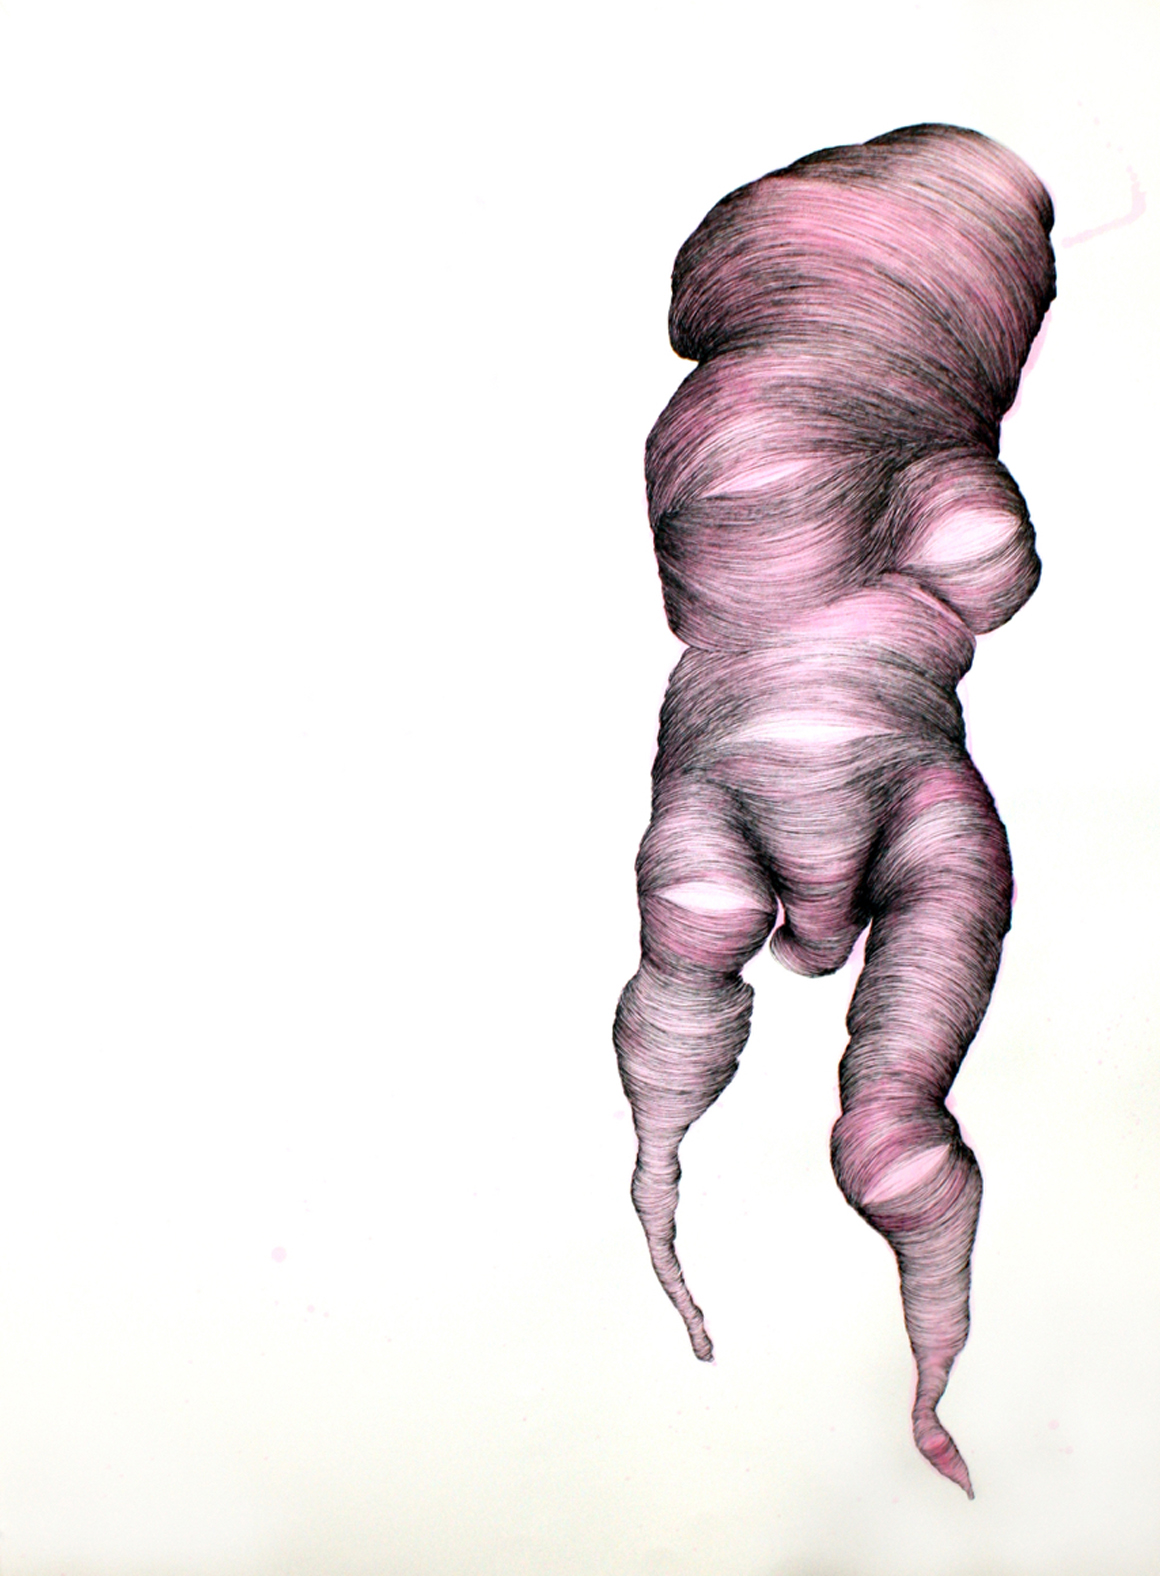 <p><em>Mandragoria</em><span class='media'>ink and acrylic on paper</span>2012<br><a class='inquire' href='mailto:info@gildargallery.com?subject=Artwork Inquiry ACOB0002&body=I am interested in finding out more about Mandragoria by Amber Cobb'>Inquire</a></p>